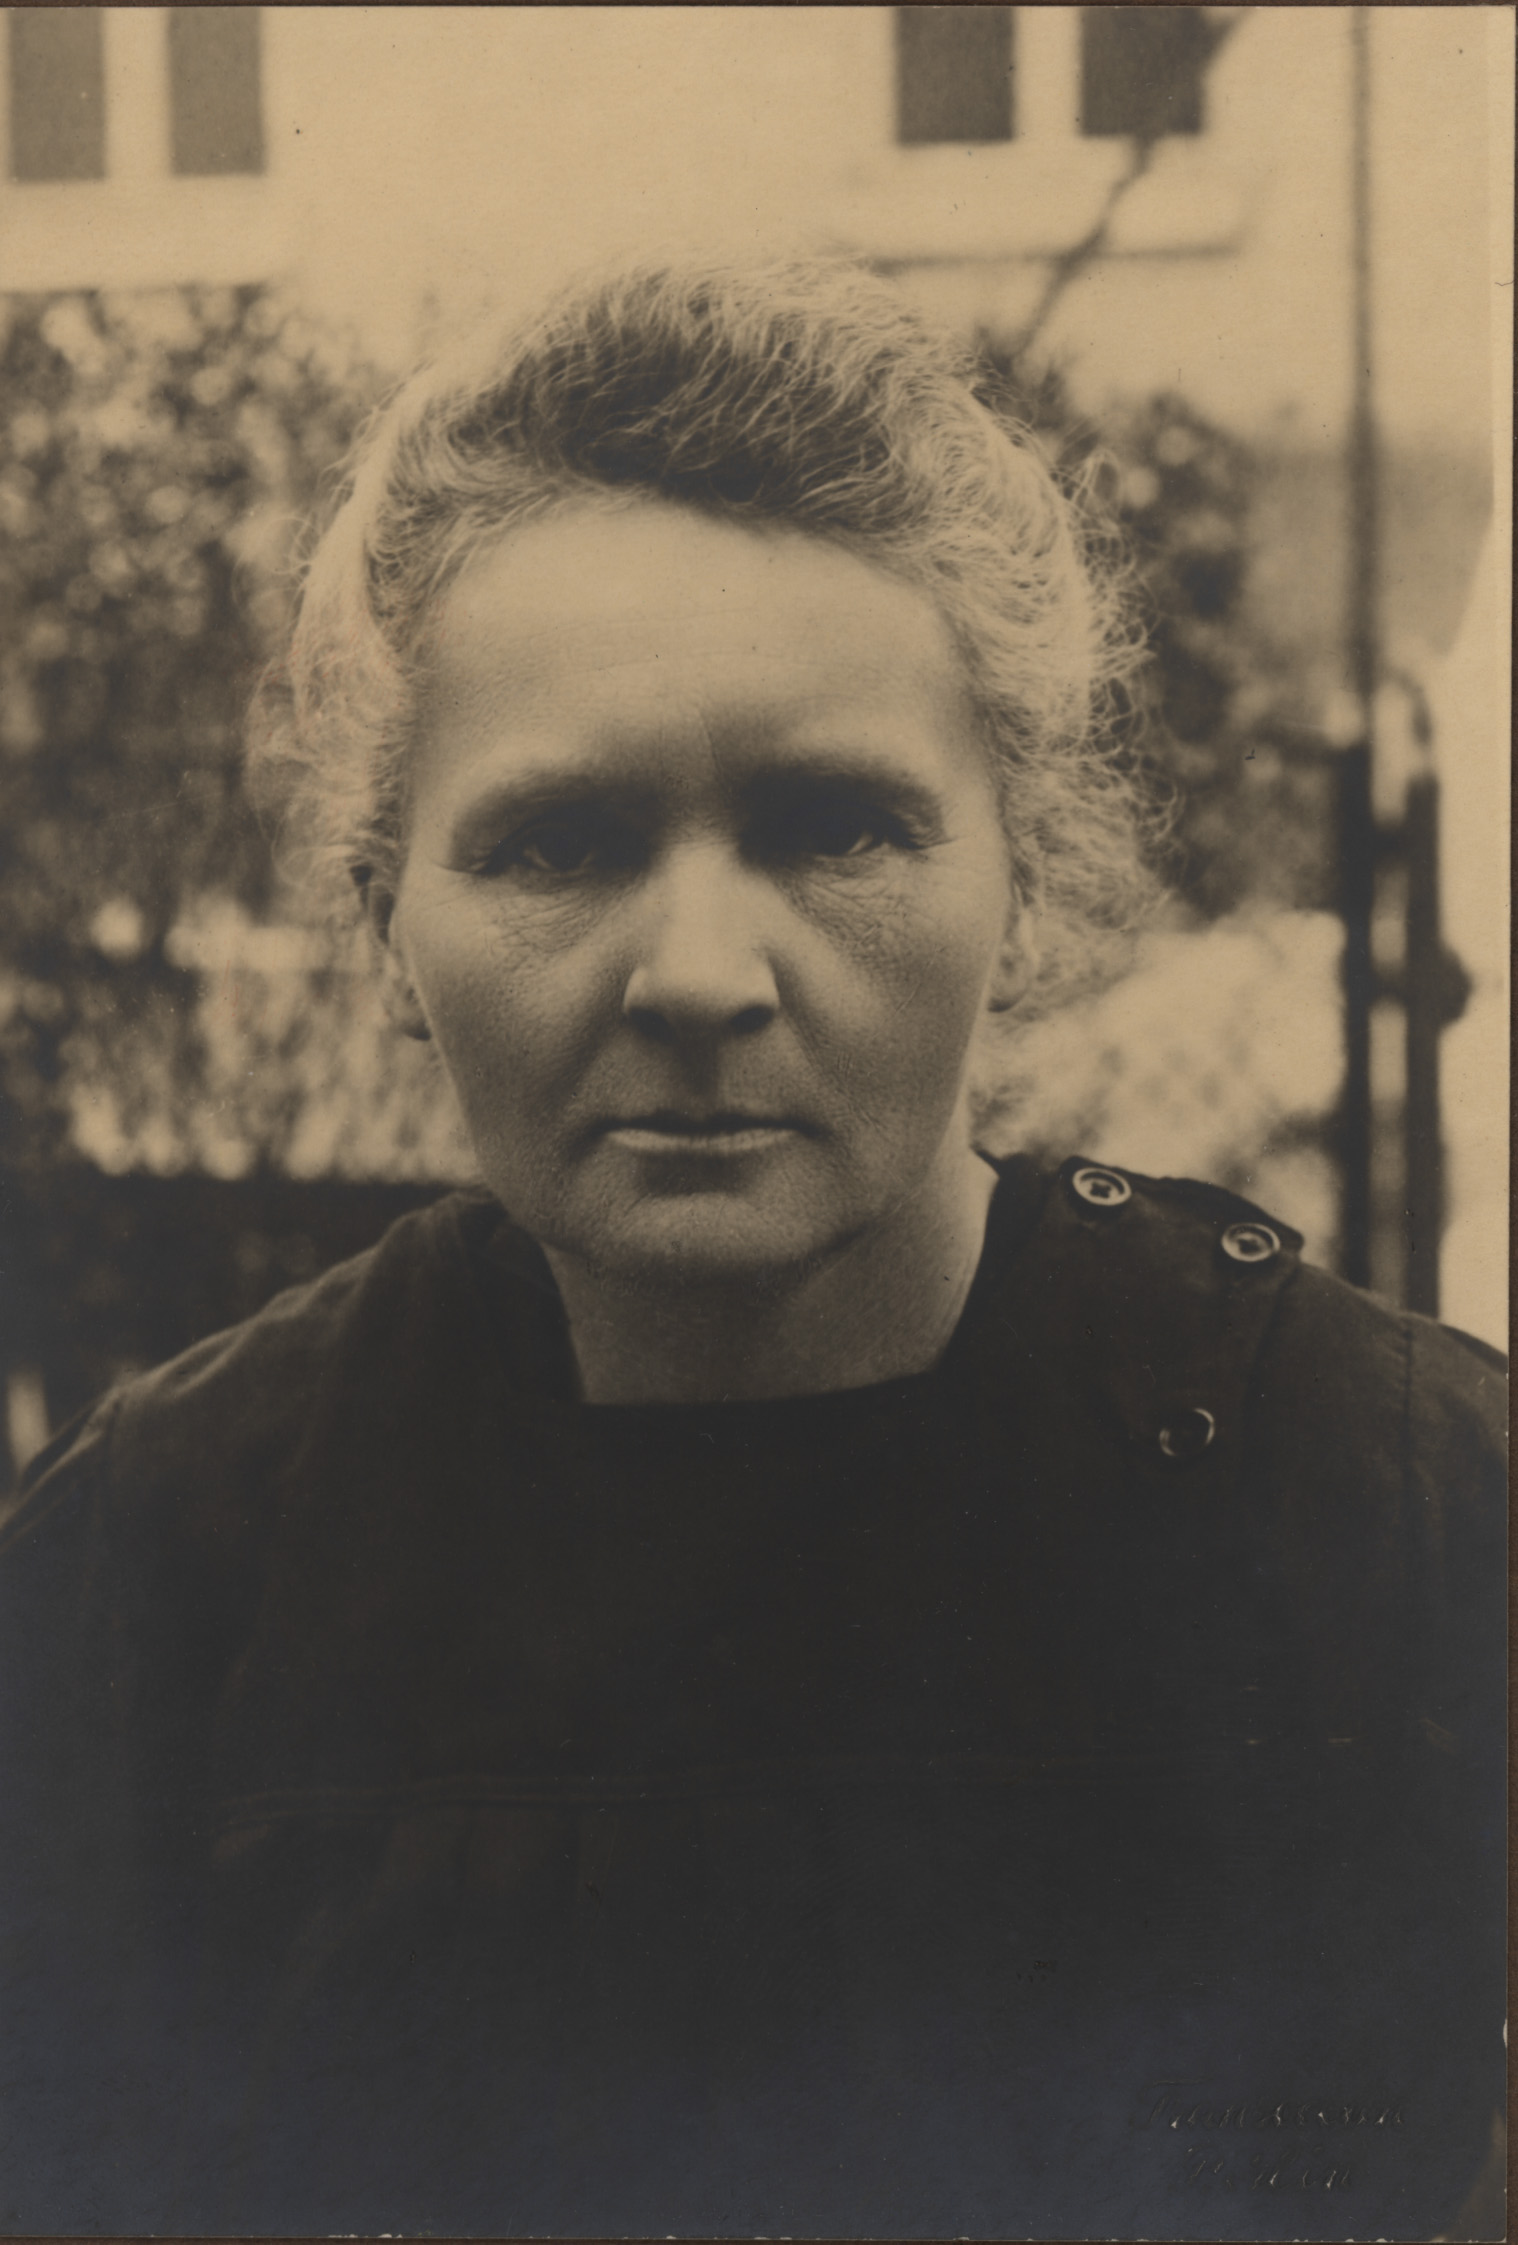 short essay on marie curie Read this full essay on marie curie marie curie, or rather marya sklodowska,  was born in warsaw on november 7, 1867  happiness was short lived in 1906 .